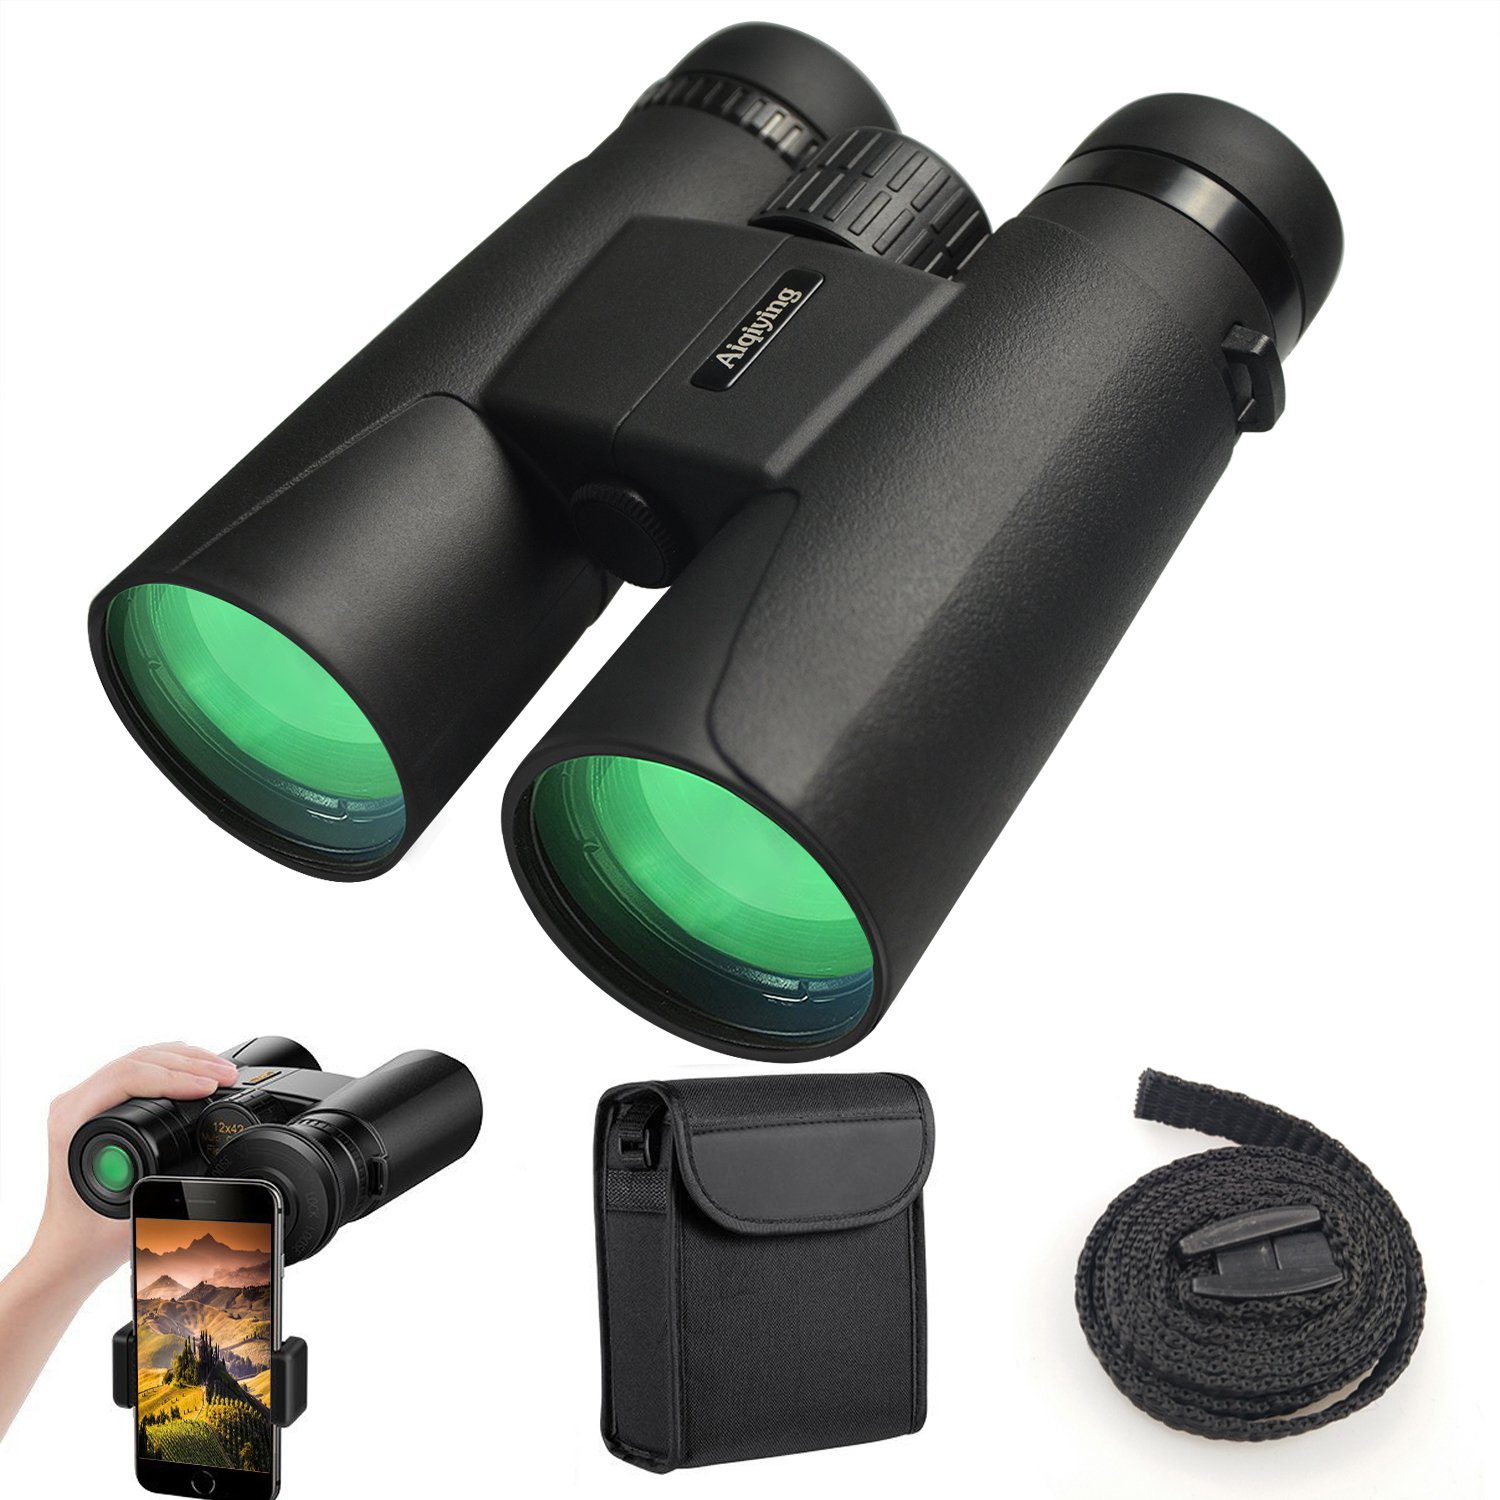 Binoculars for Adults, 12X42 Low Night Vision Binoculars Professional HD Compact Durable Folding Waterproof & Fogproof Roof Prism Binocular Scope for Bird Watching Travel Stargazing Hunting Concerts by Aiqiying